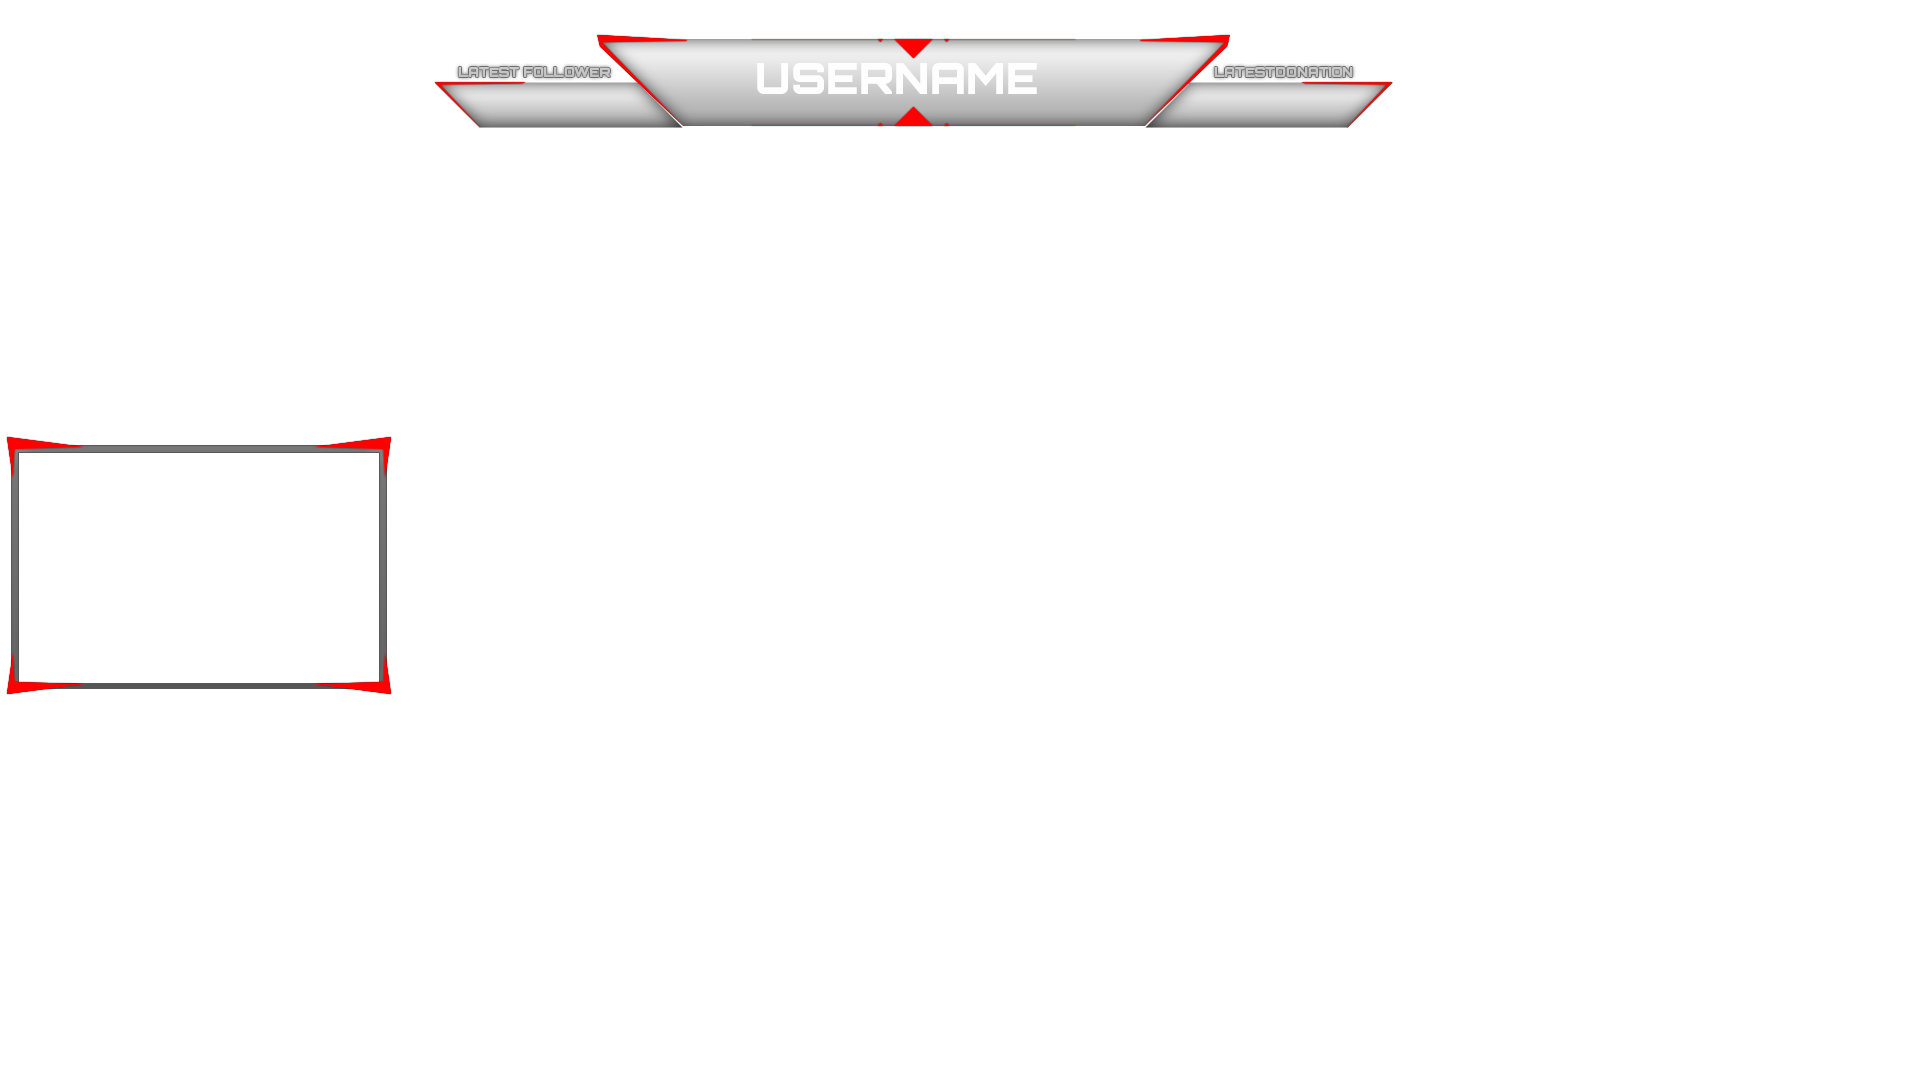 Twitch Simple Overlay by JaegerPangaia on DeviantArt